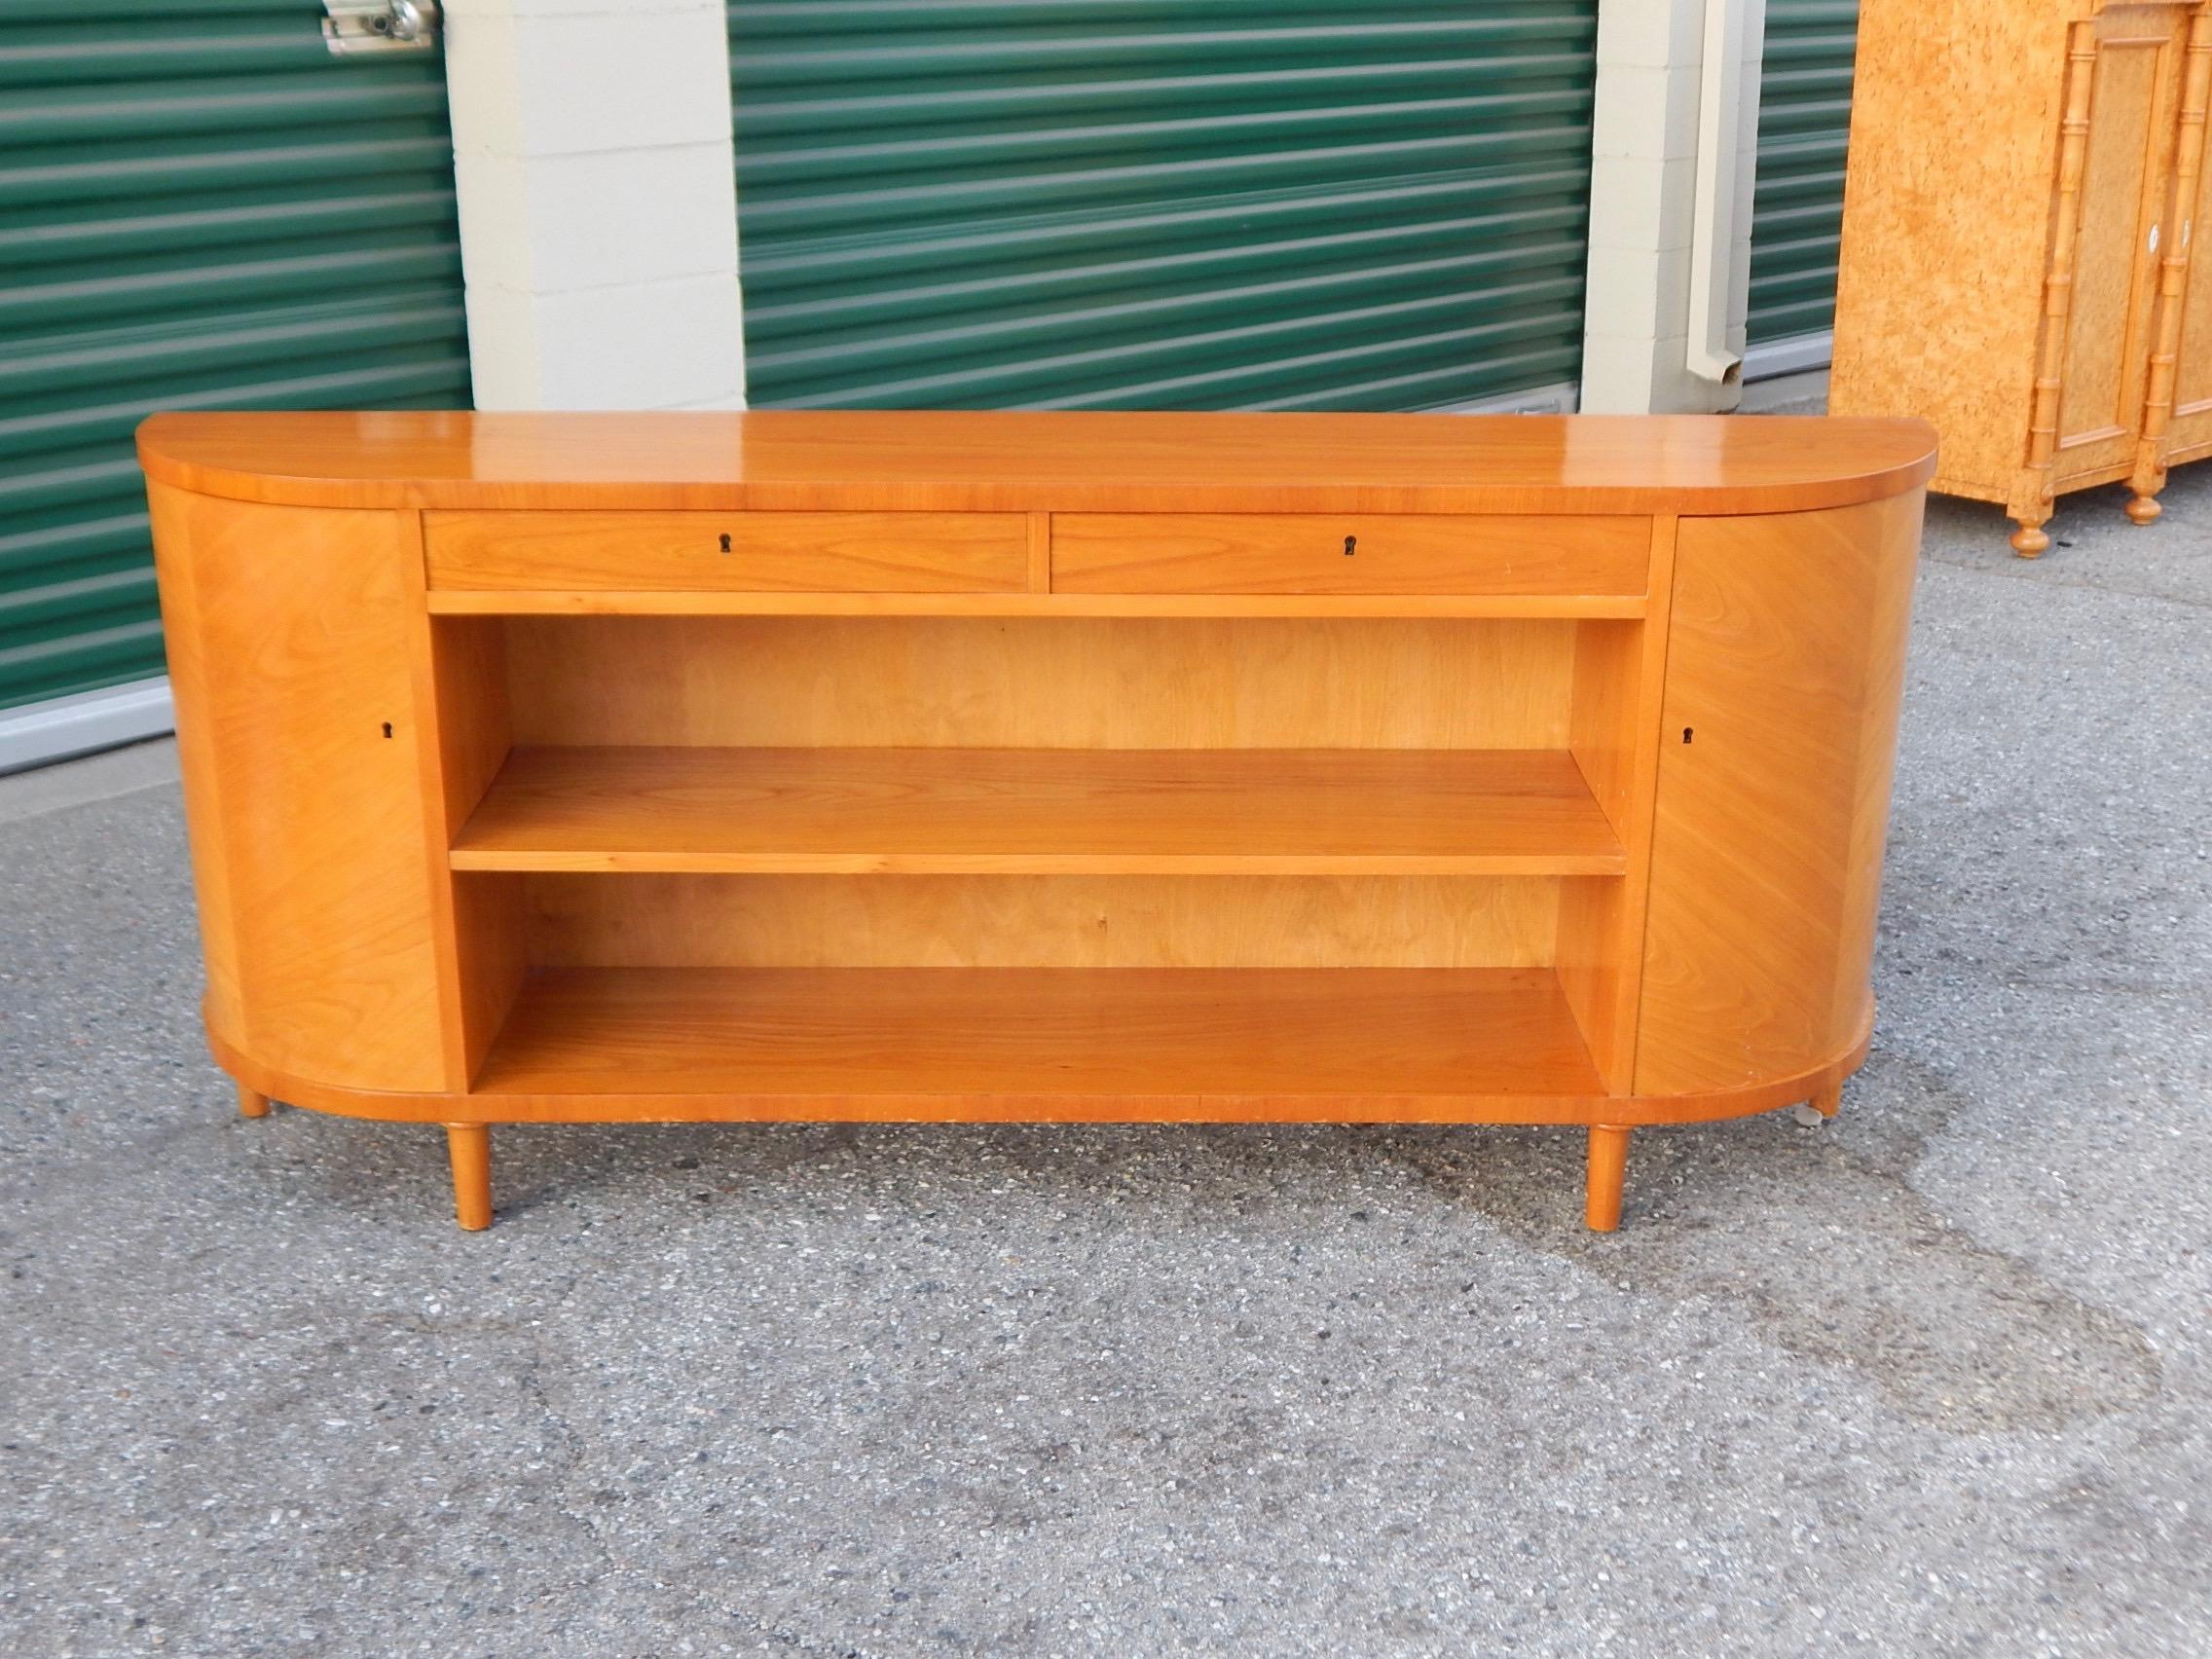 Swedish Art Moderne Book Case/Cabinet In Golden Elm, Circa 1940